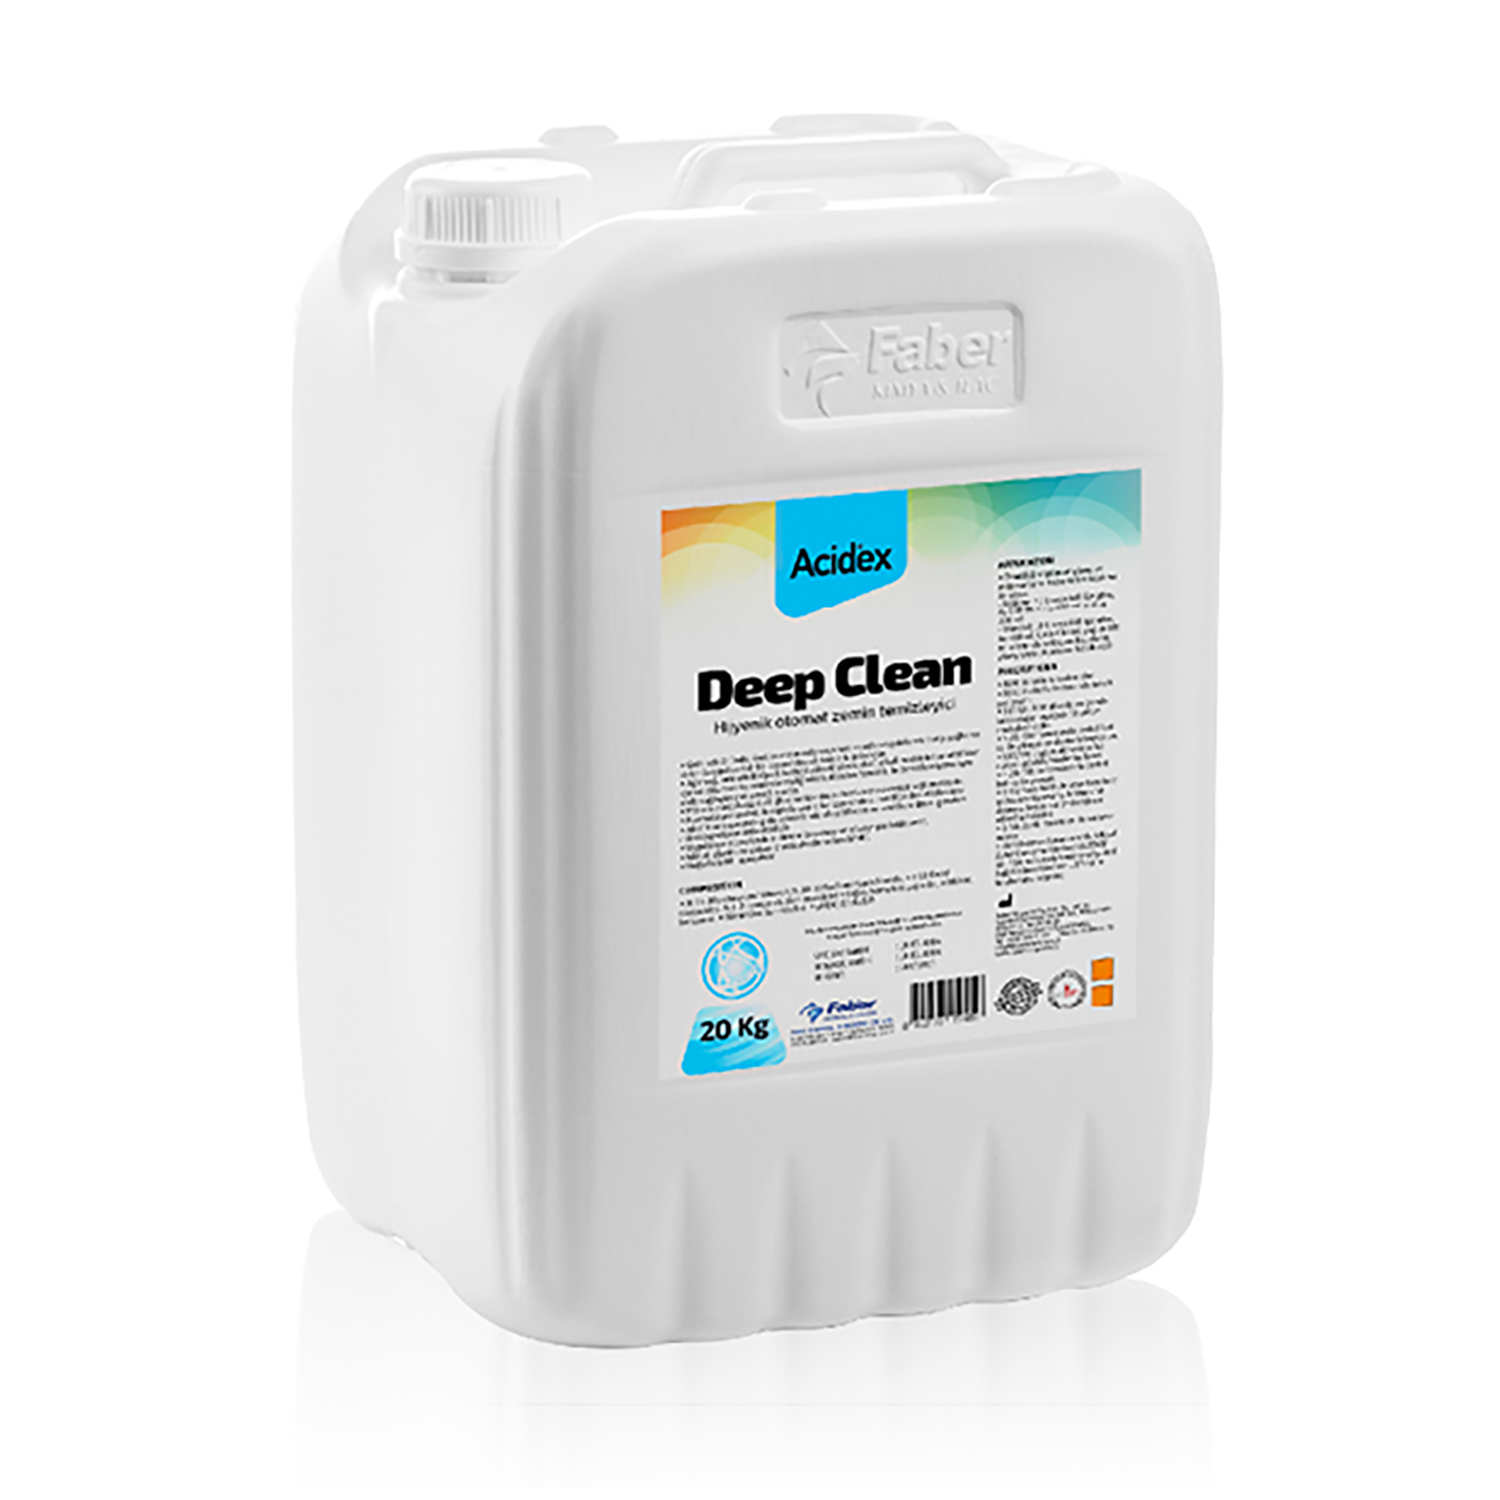 Acidex Deep Clean